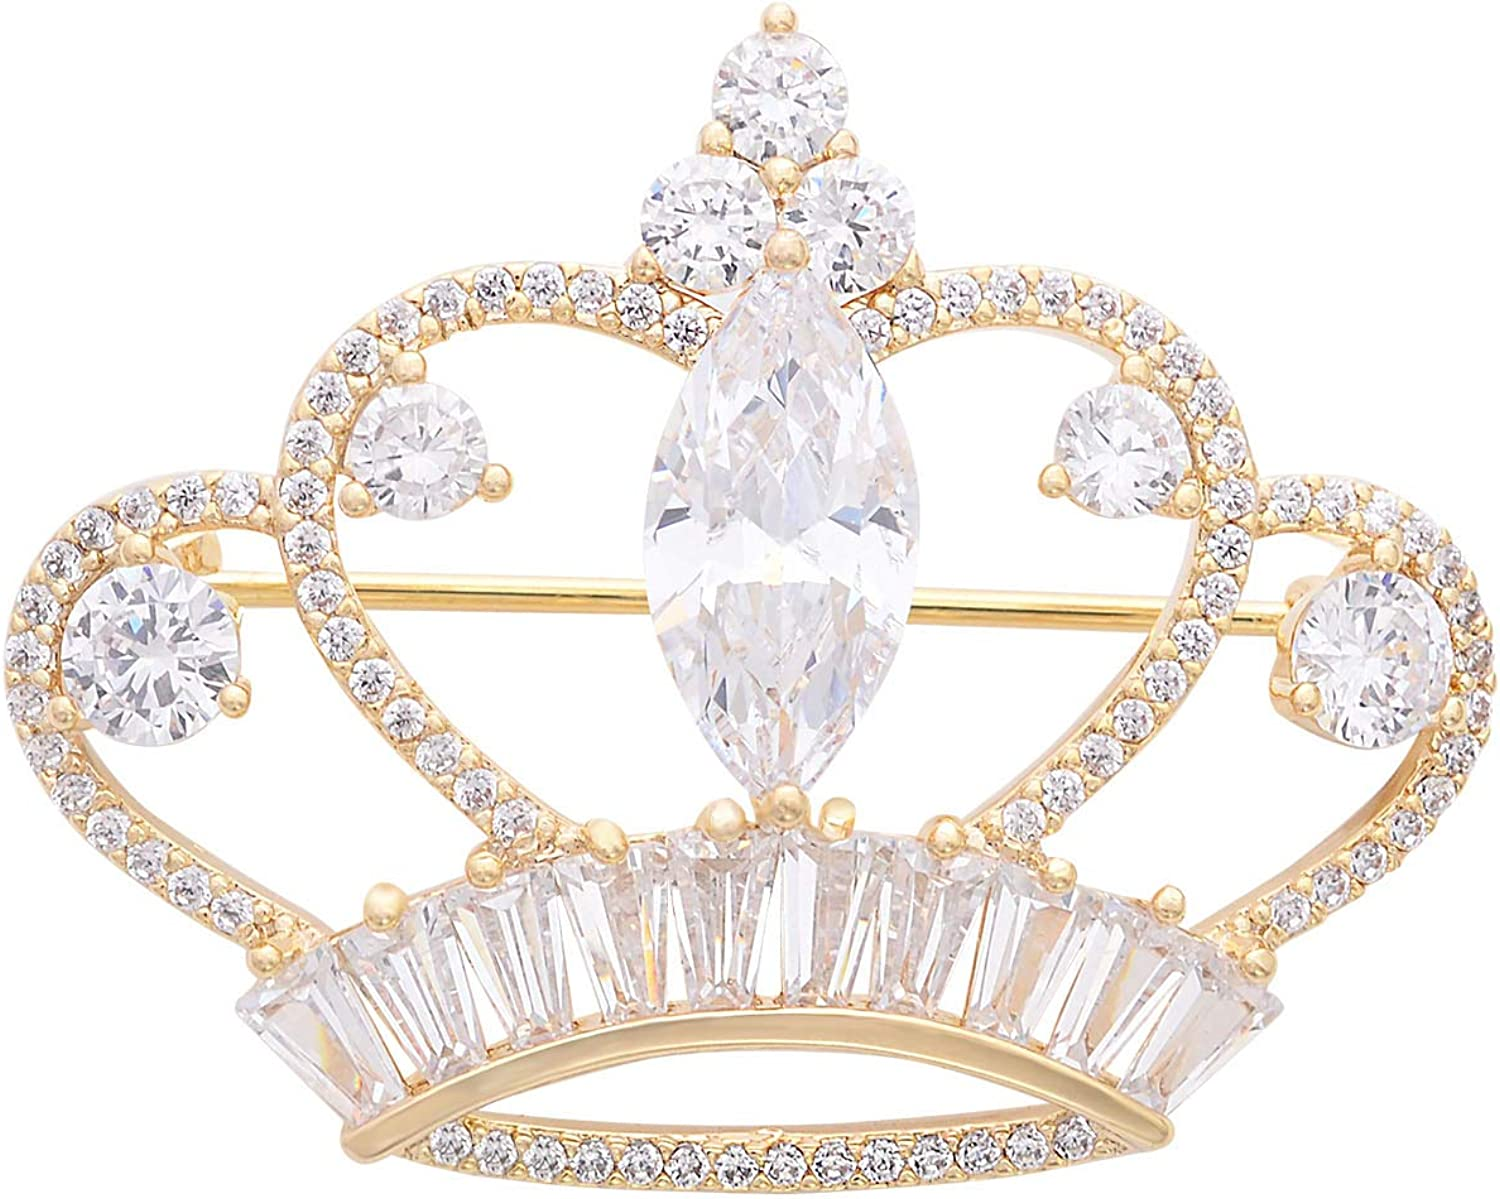 YYBONNIE Princess Queen Crown Brass Zirconia Max 62% OFF OFFicial shop Pave Micro Br Cubic